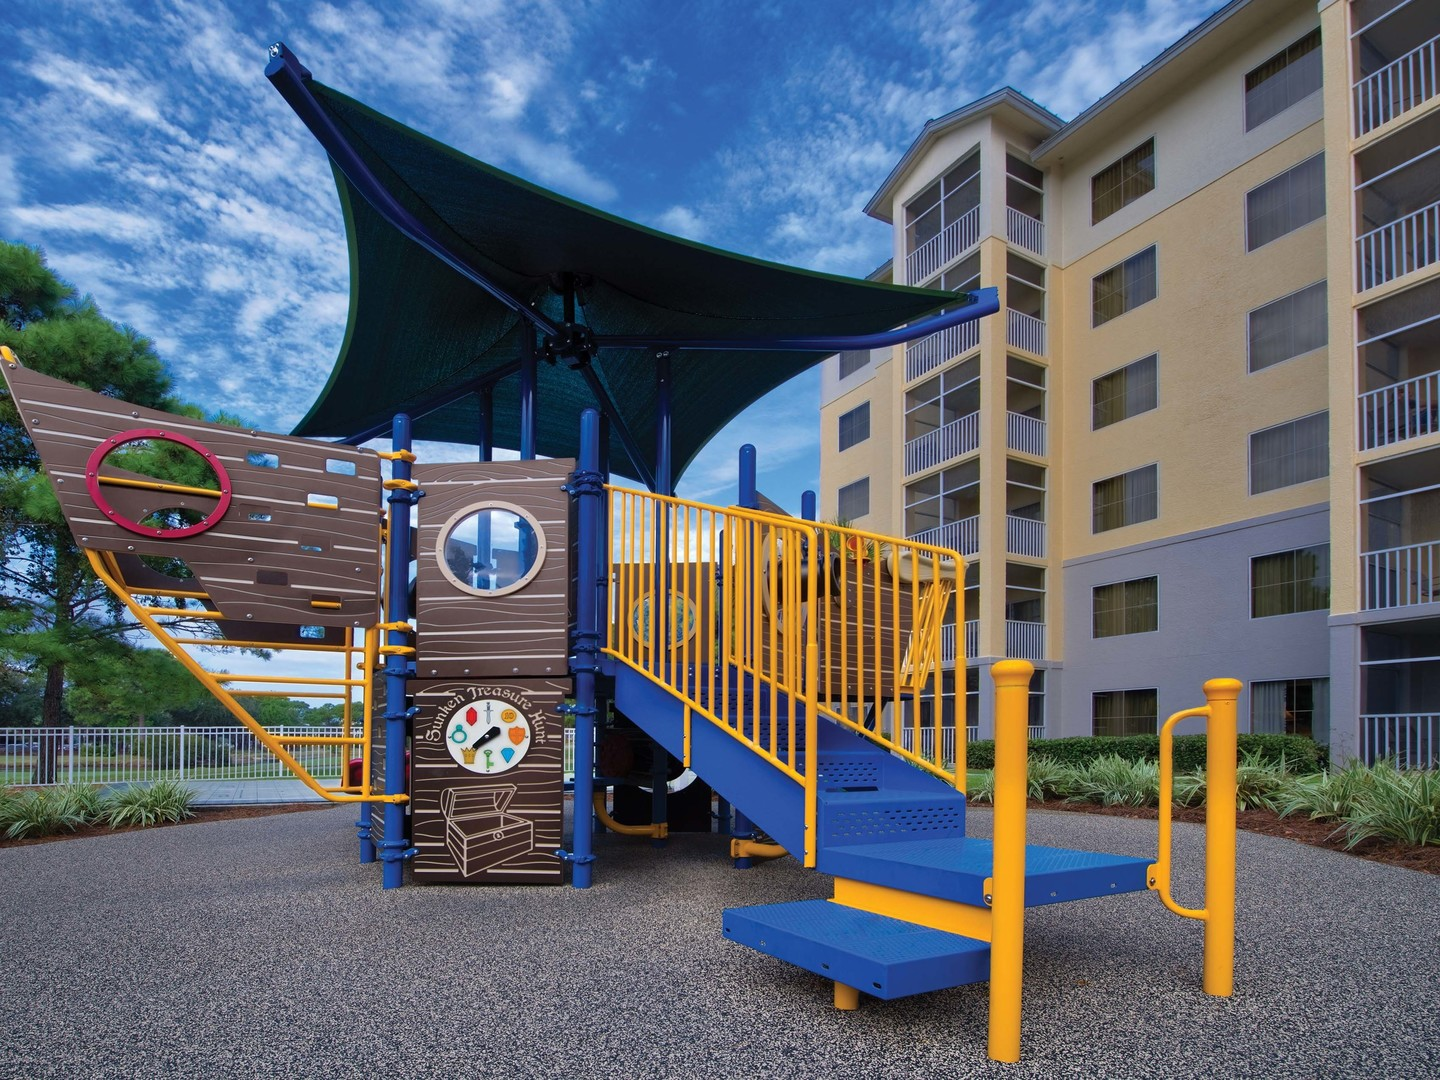 Marriott's Legends Edge at Bay Point Children's Playground. Marriott's Legends Edge at Bay Point is located in Panama City, Florida United States.